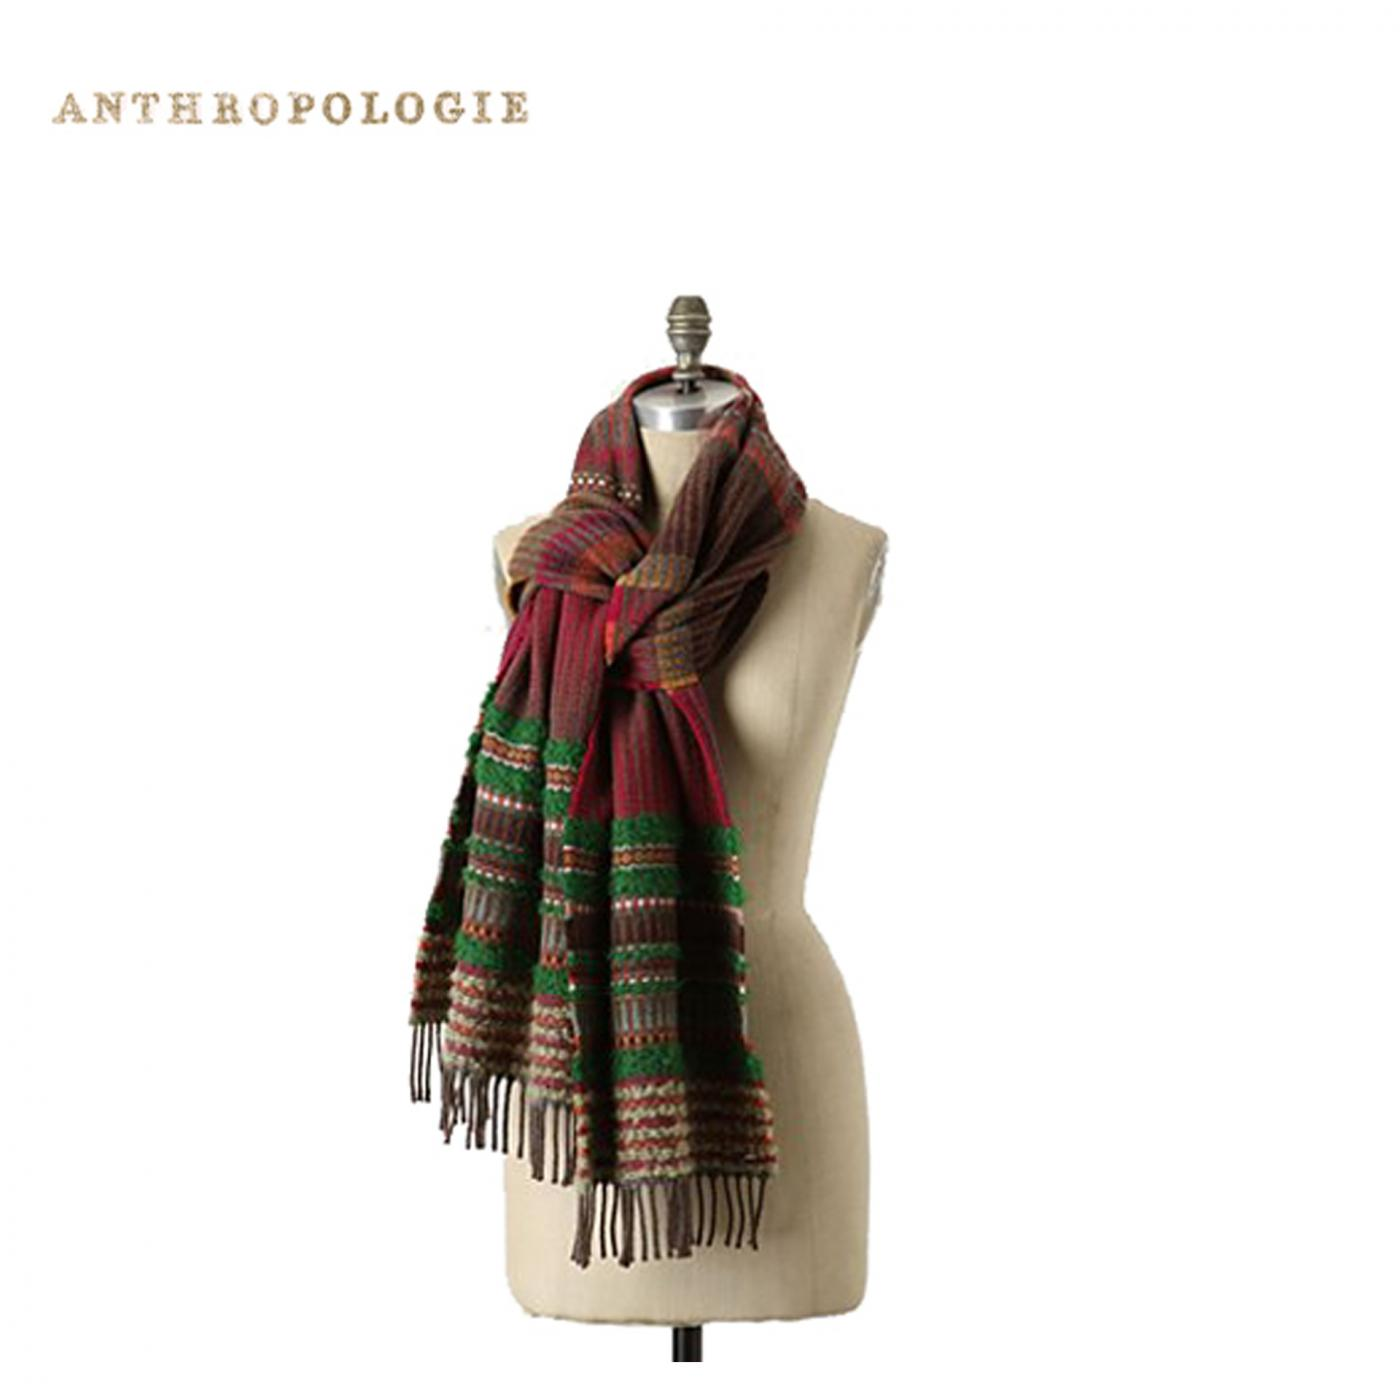 Anthropologie – Lambswool Triangle weave wraps